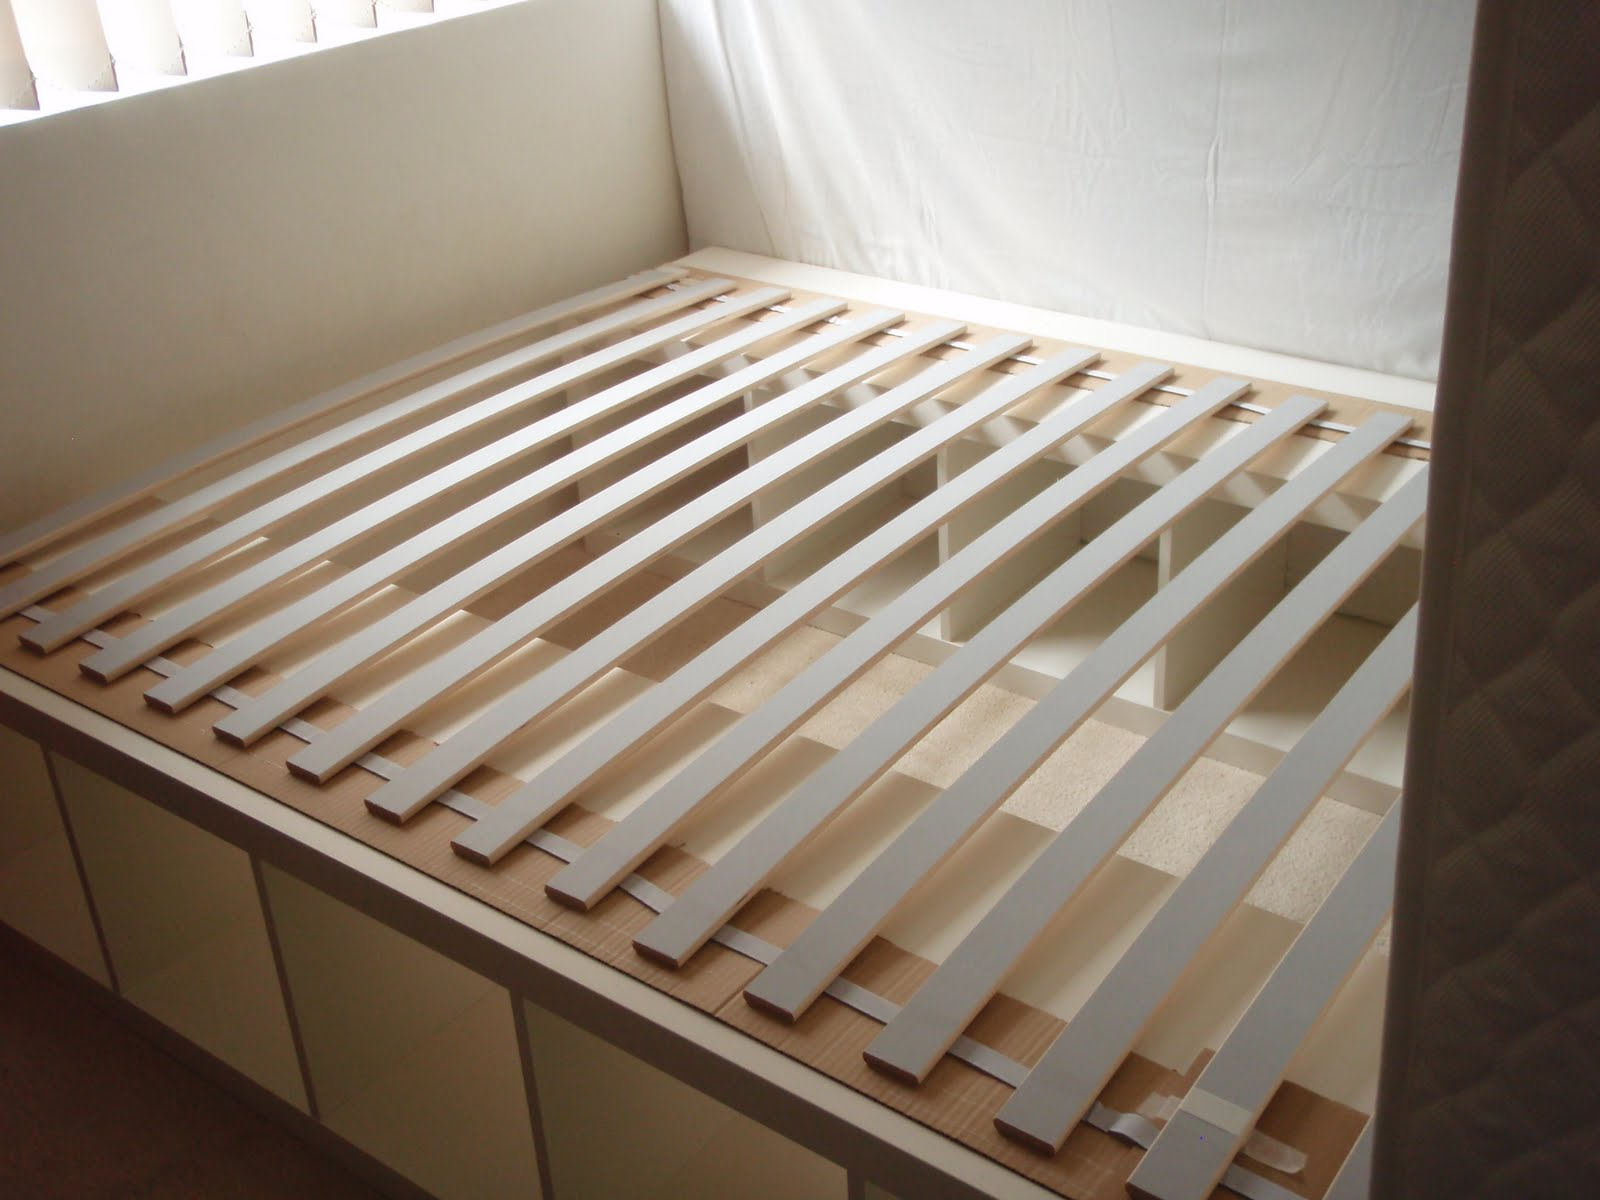 Expedit re purposed as bed frame for maximum storage